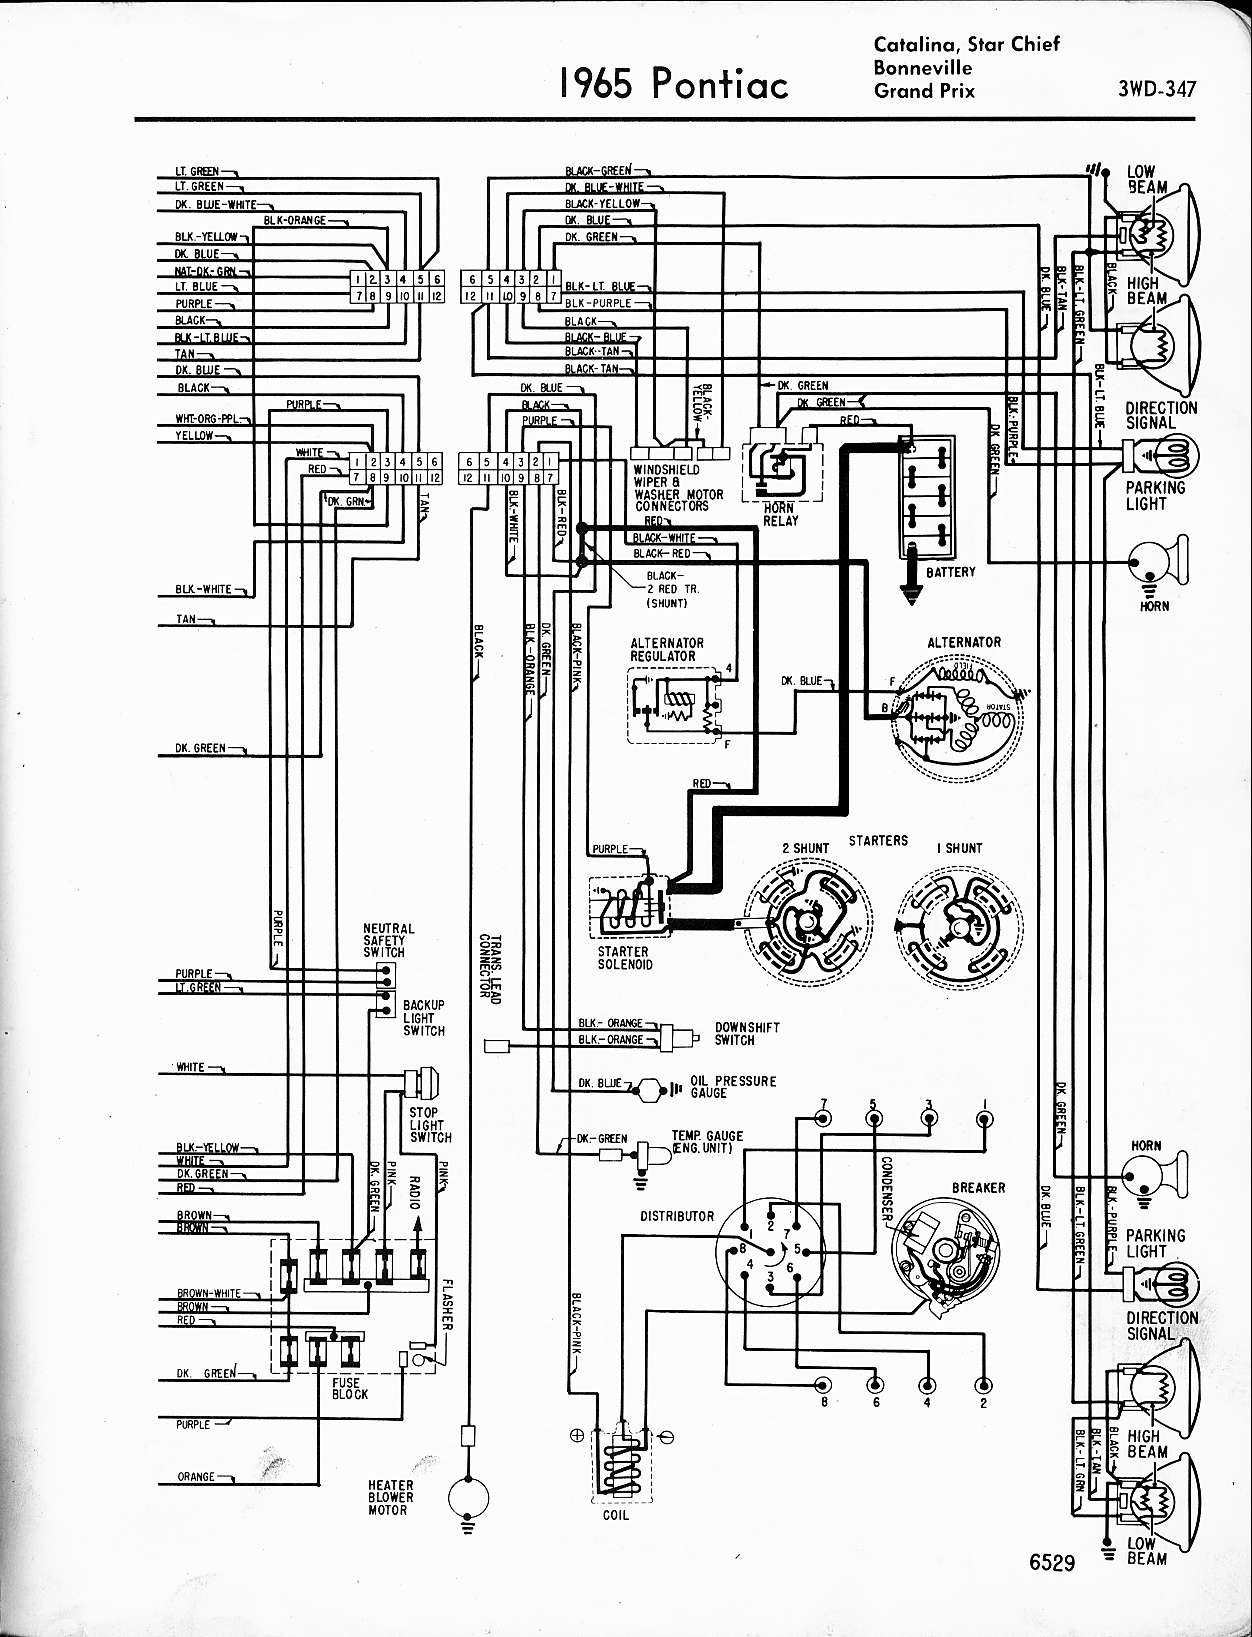 MWire5765 347 wallace racing wiring diagrams 2002 pontiac grand prix wiring diagram at soozxer.org